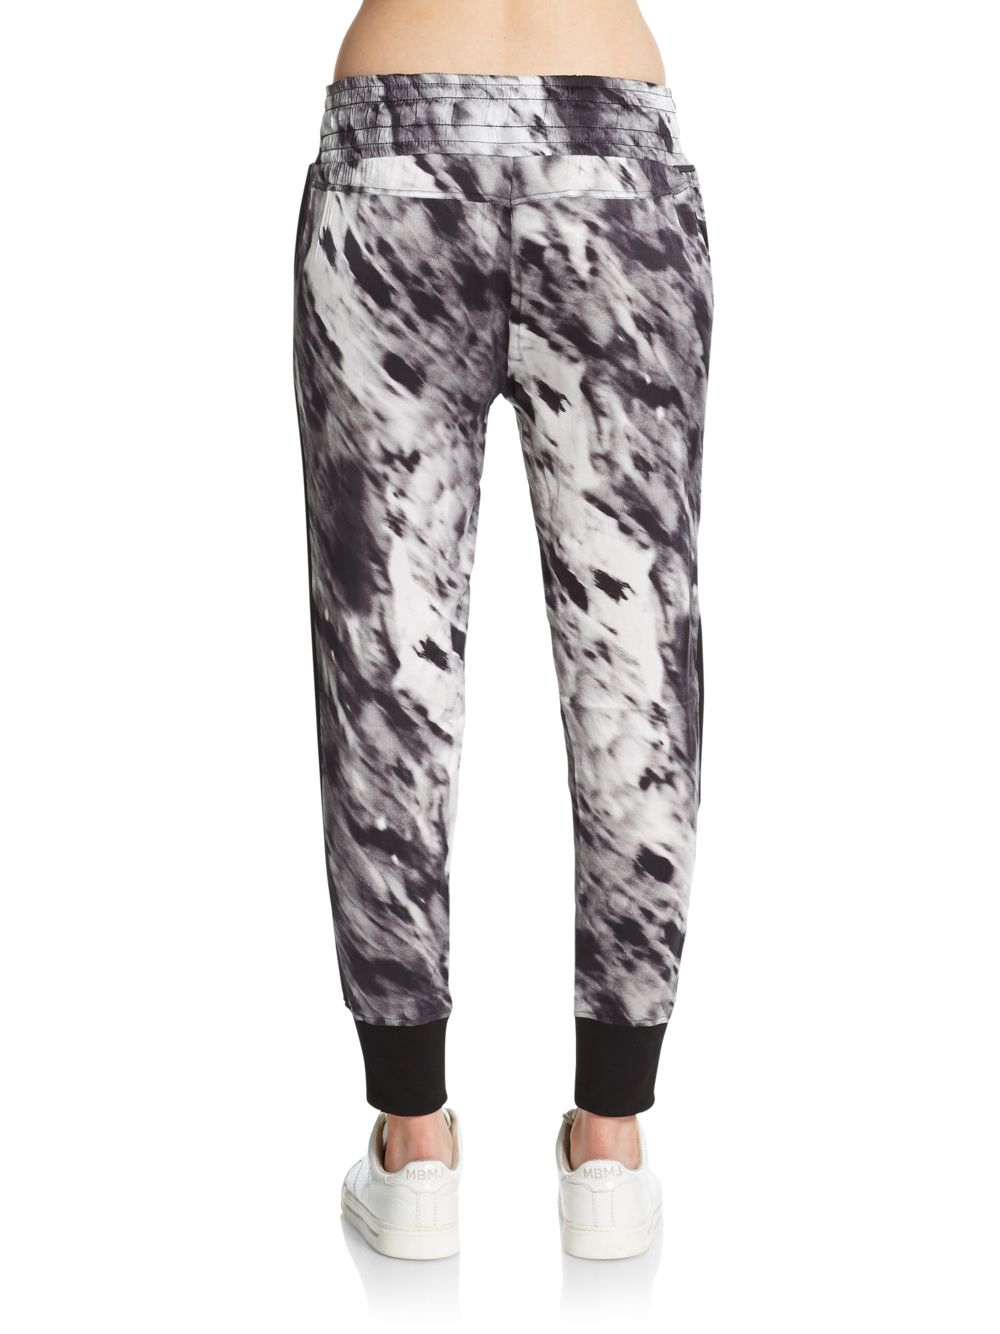 Awesome Popular Jogger Pants For WomenBuy Popular Jogger Pants For Women Lots